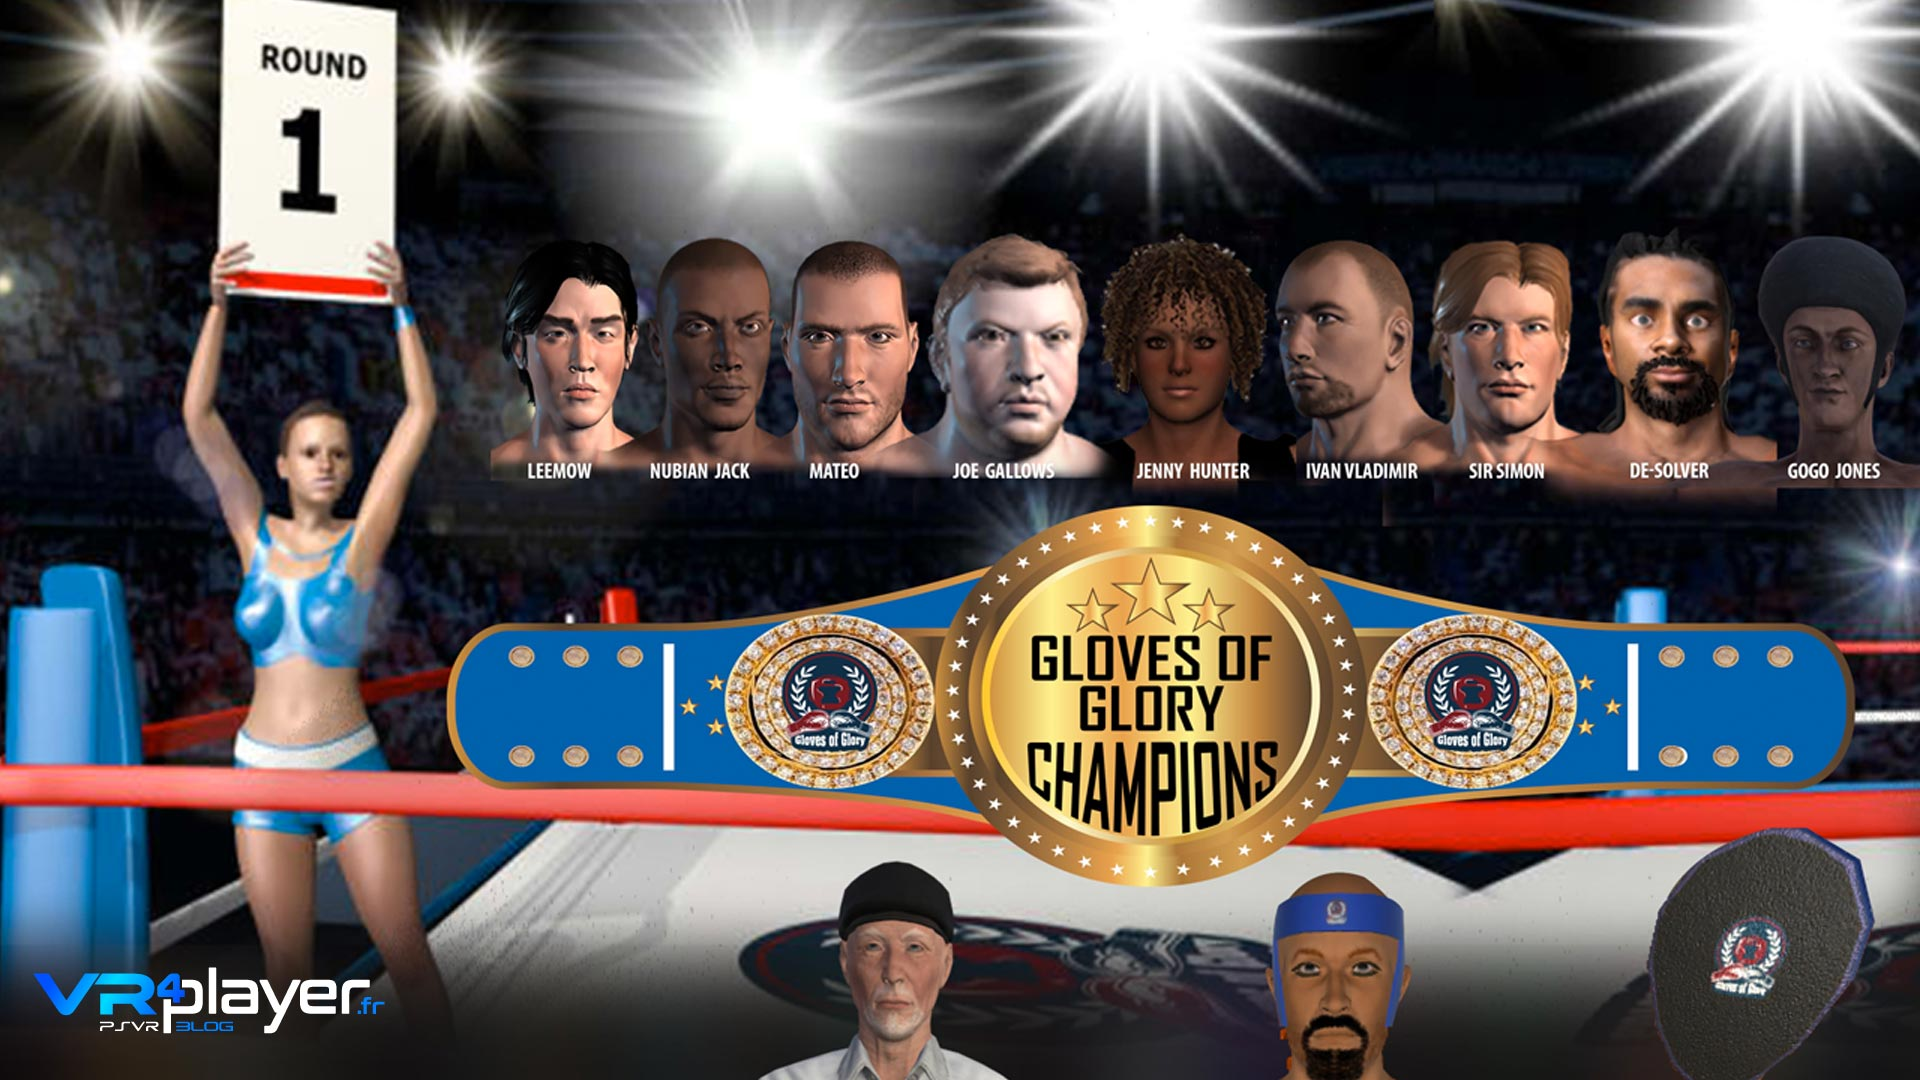 Gloves of Glory VR4player.fr